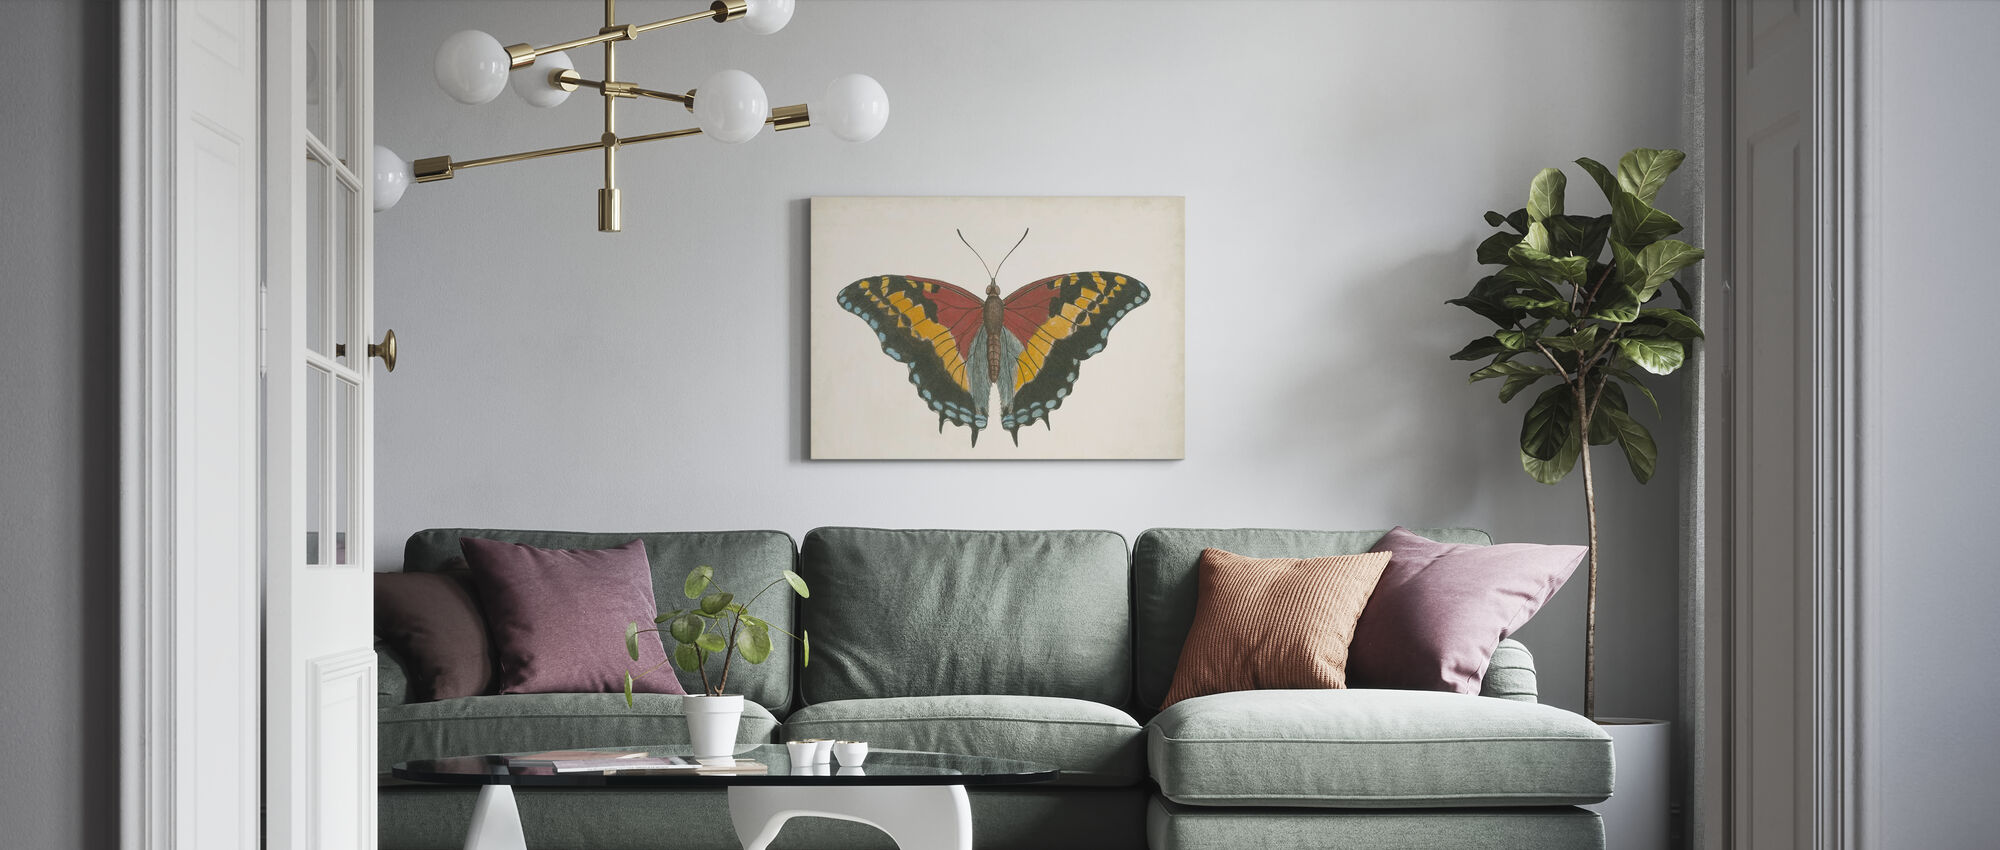 Beautiful Butterfly II - Canvas print - Living Room